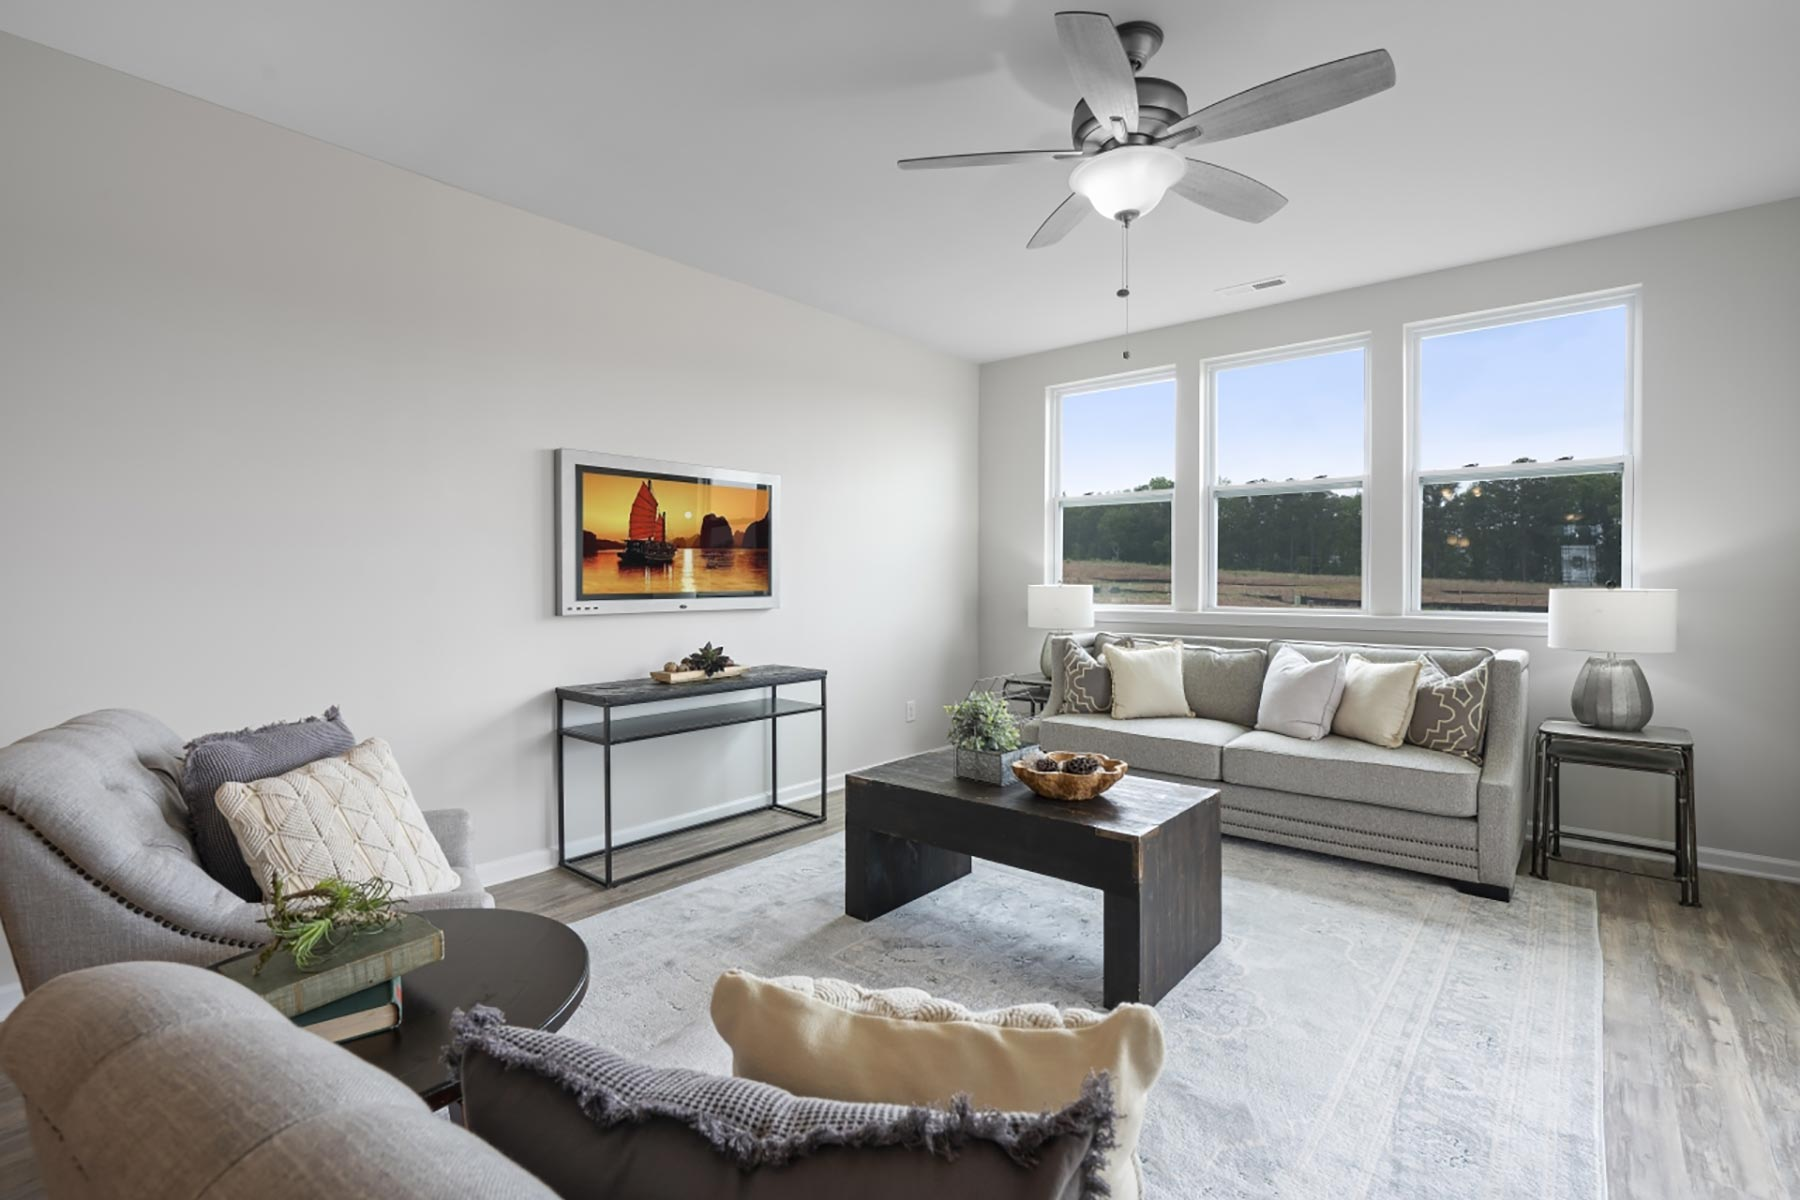 Evelyn Plan Greatroom at Bedford at Flowers Plantation in Clayton North Carolina by Mattamy Homes